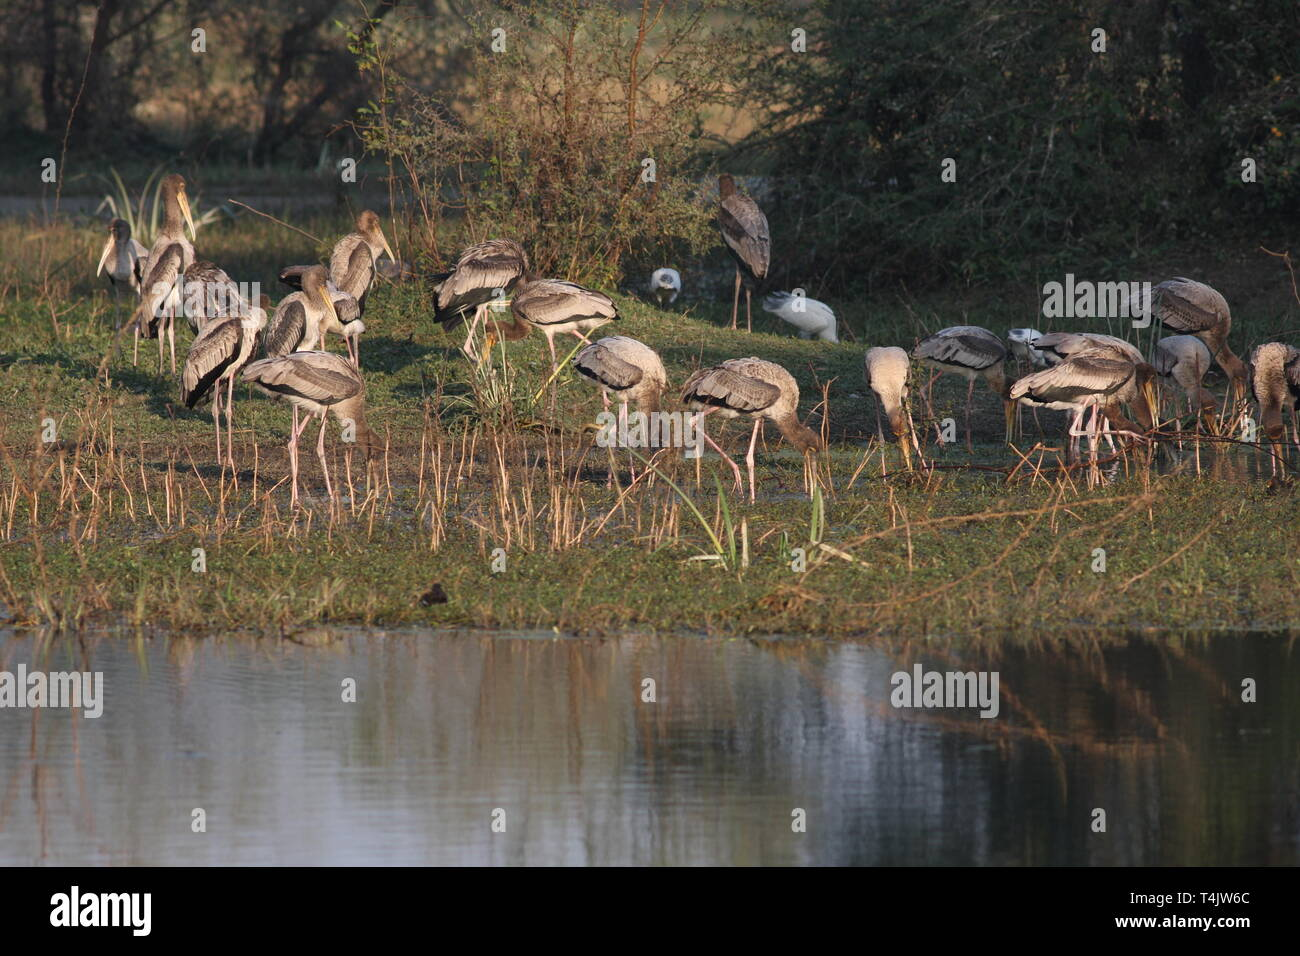 Young painted storks feeding in Keoladeo National Park, Rajasthan - Stock Image